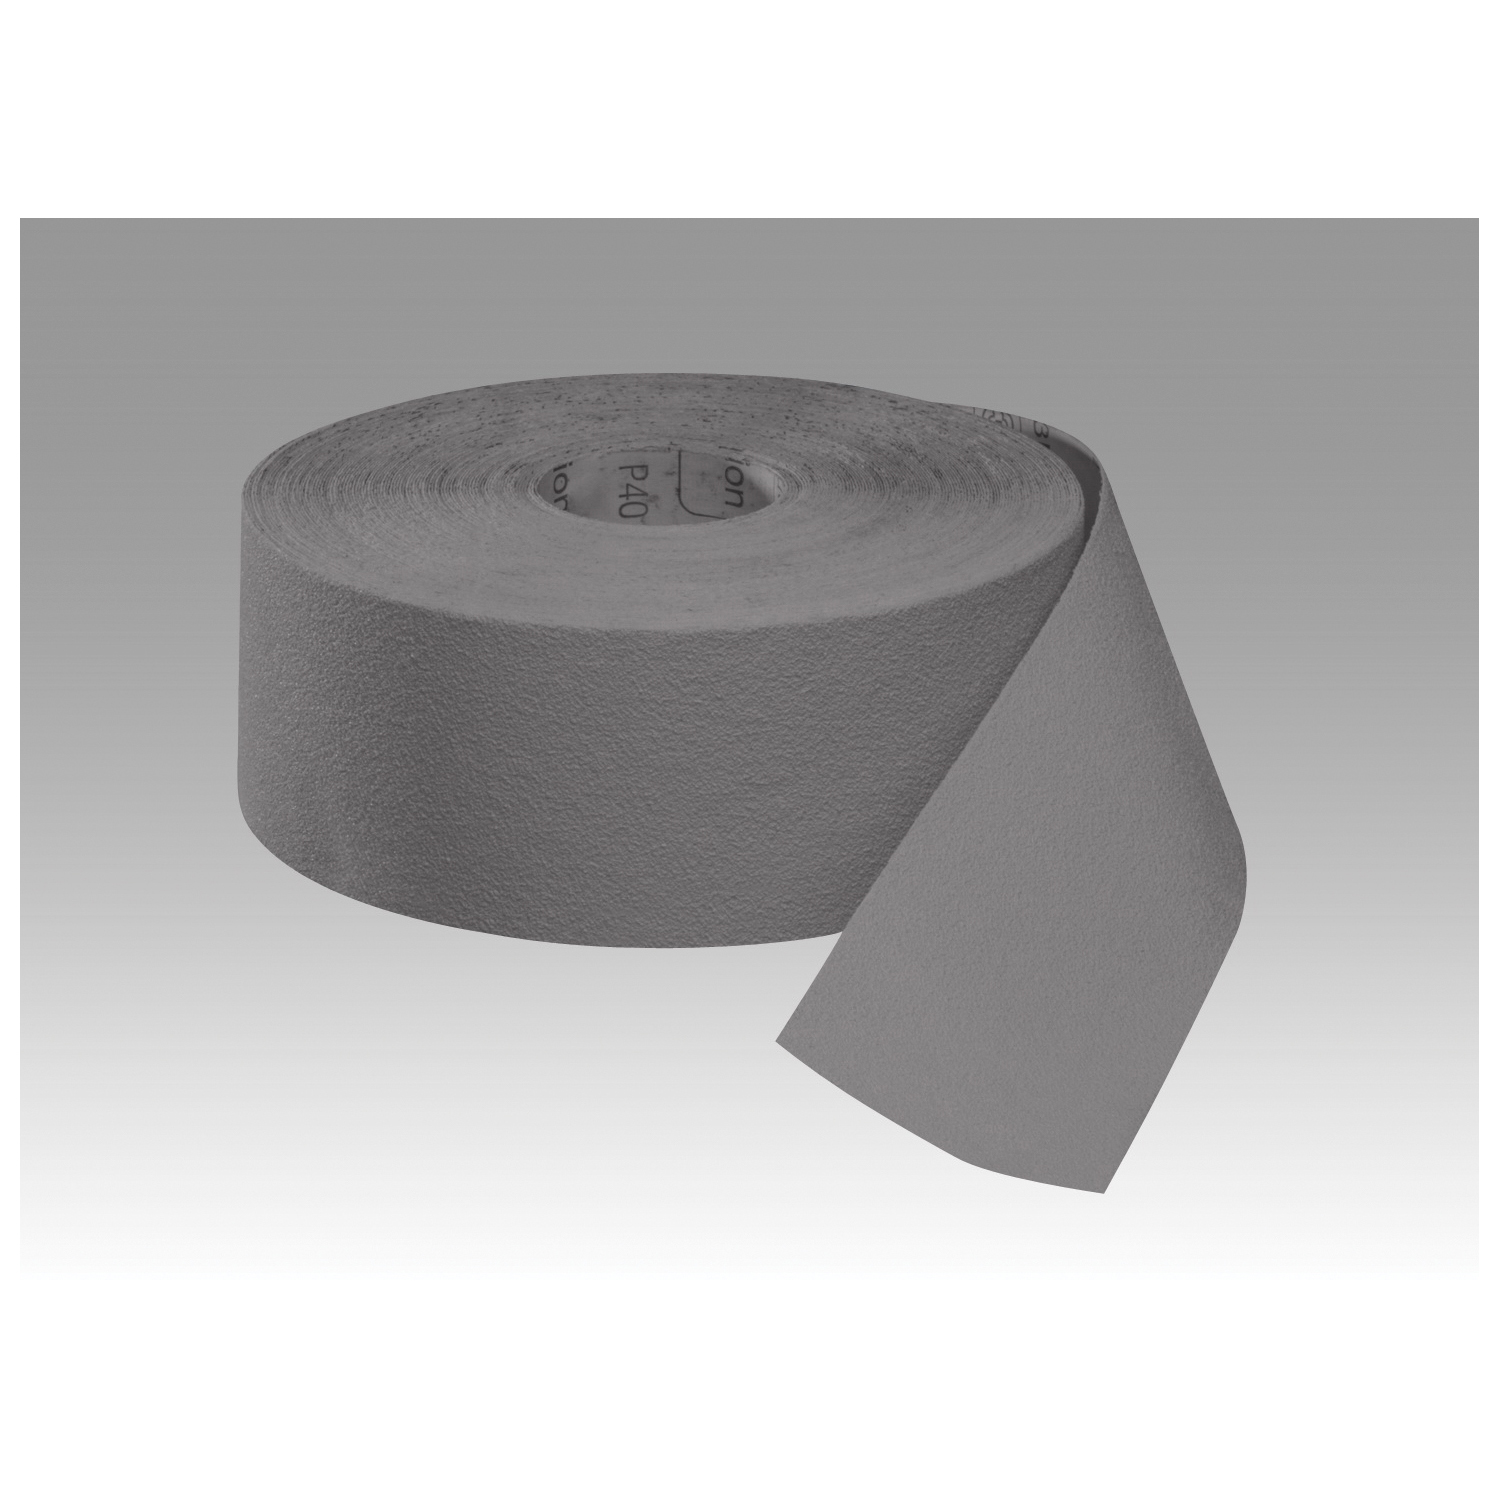 3M™ Wetordry™ 051144-15765 Closed Coated Abrasive Roll, 50 yd L x 6 in W, 240 Grit, Very Fine Grade, Silicon Carbide Abrasive, Paper Backing